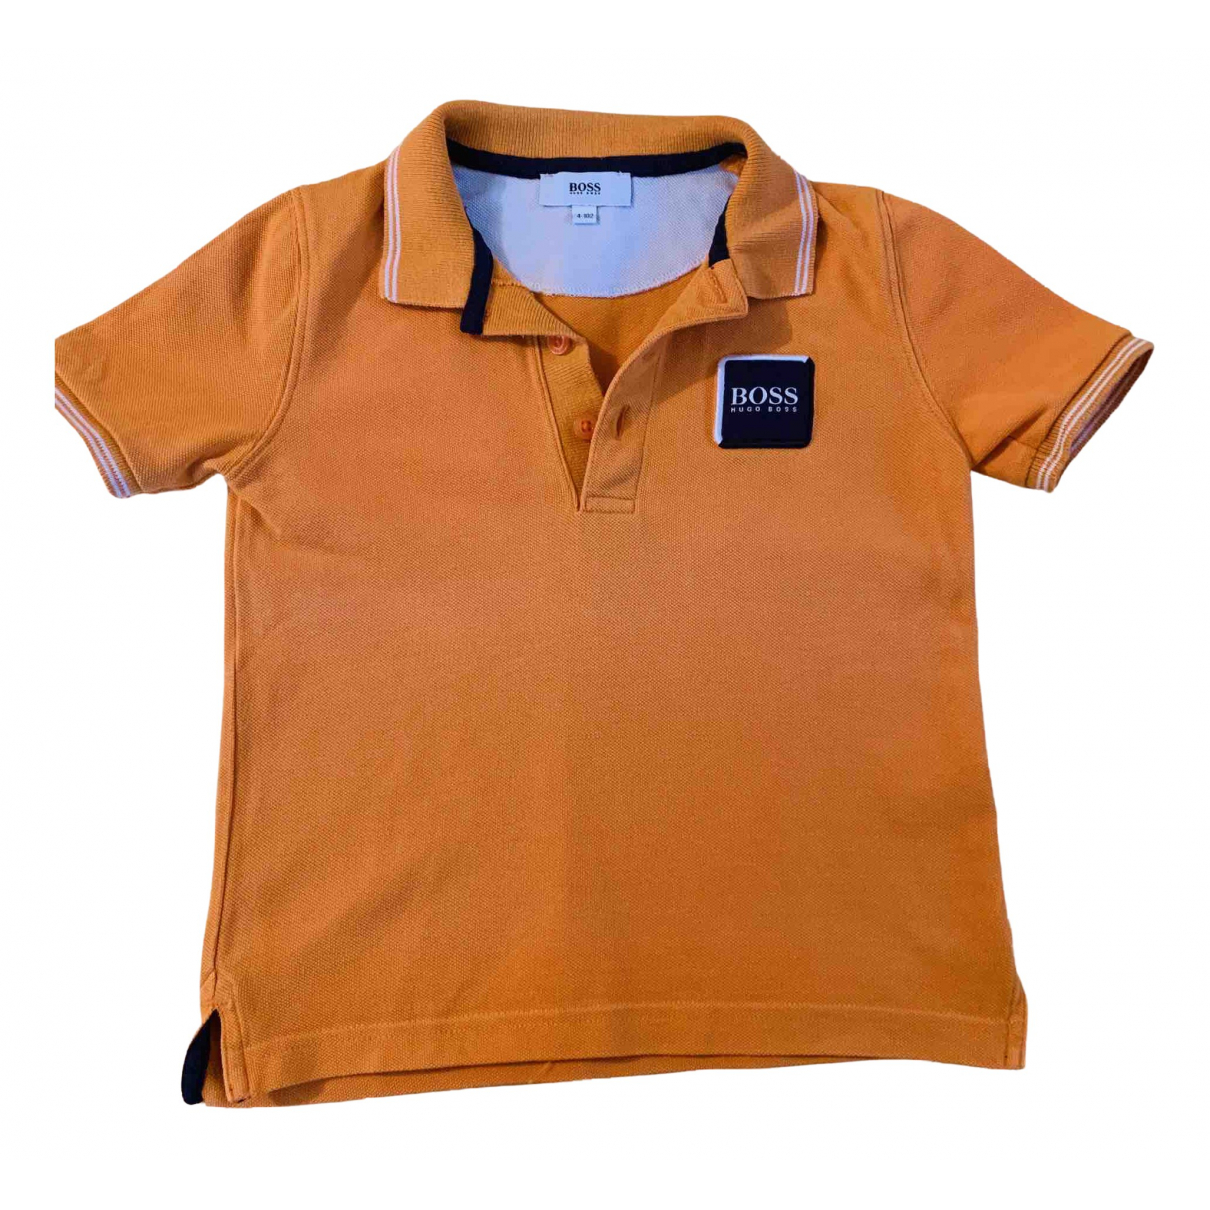 Boss N Orange Cotton  top for Kids 4 years - up to 102cm FR